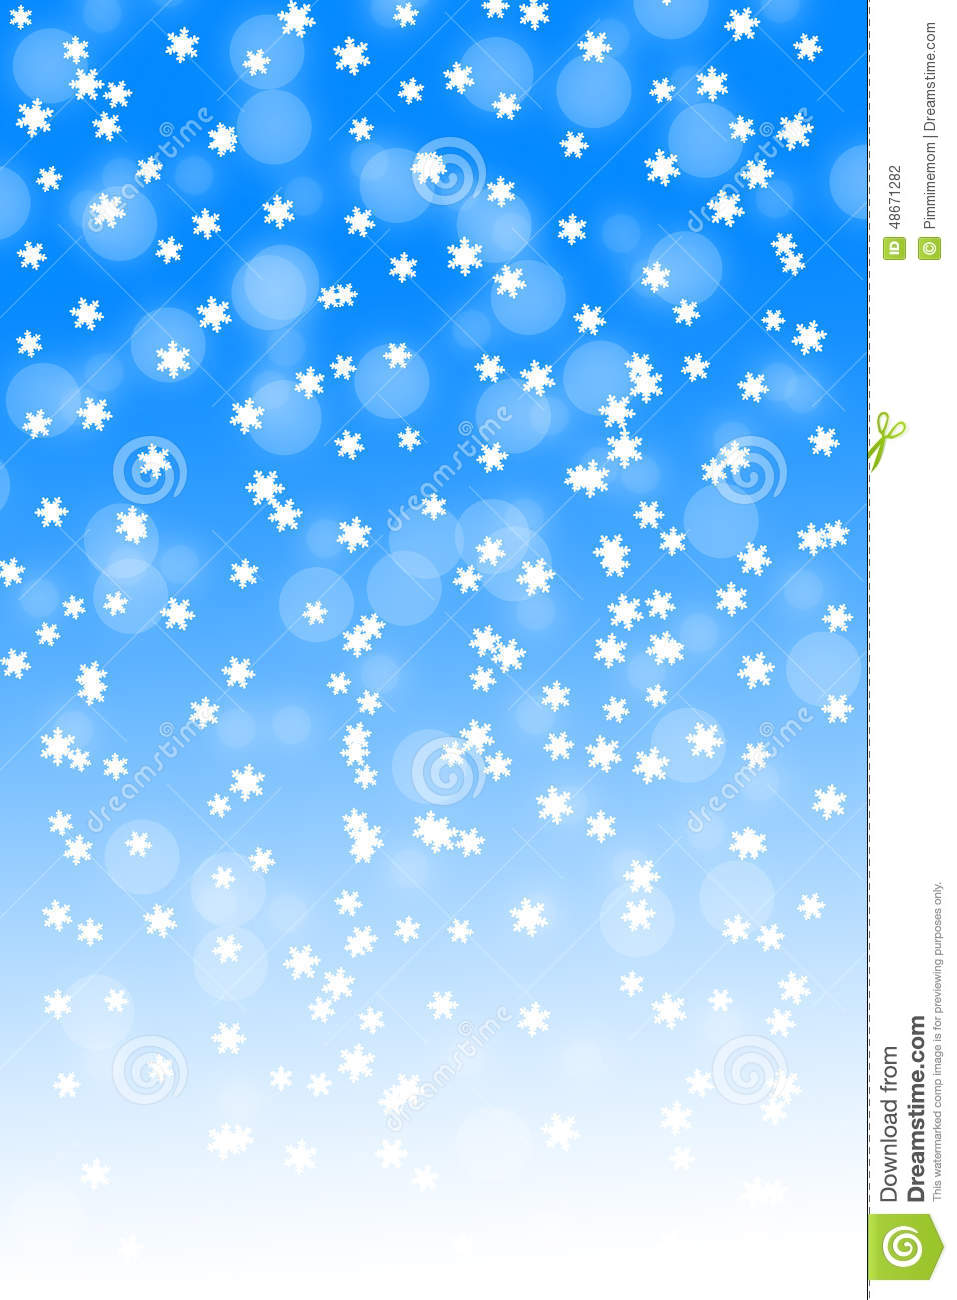 Snowfall On Blue And White Gradient Background Stock ...